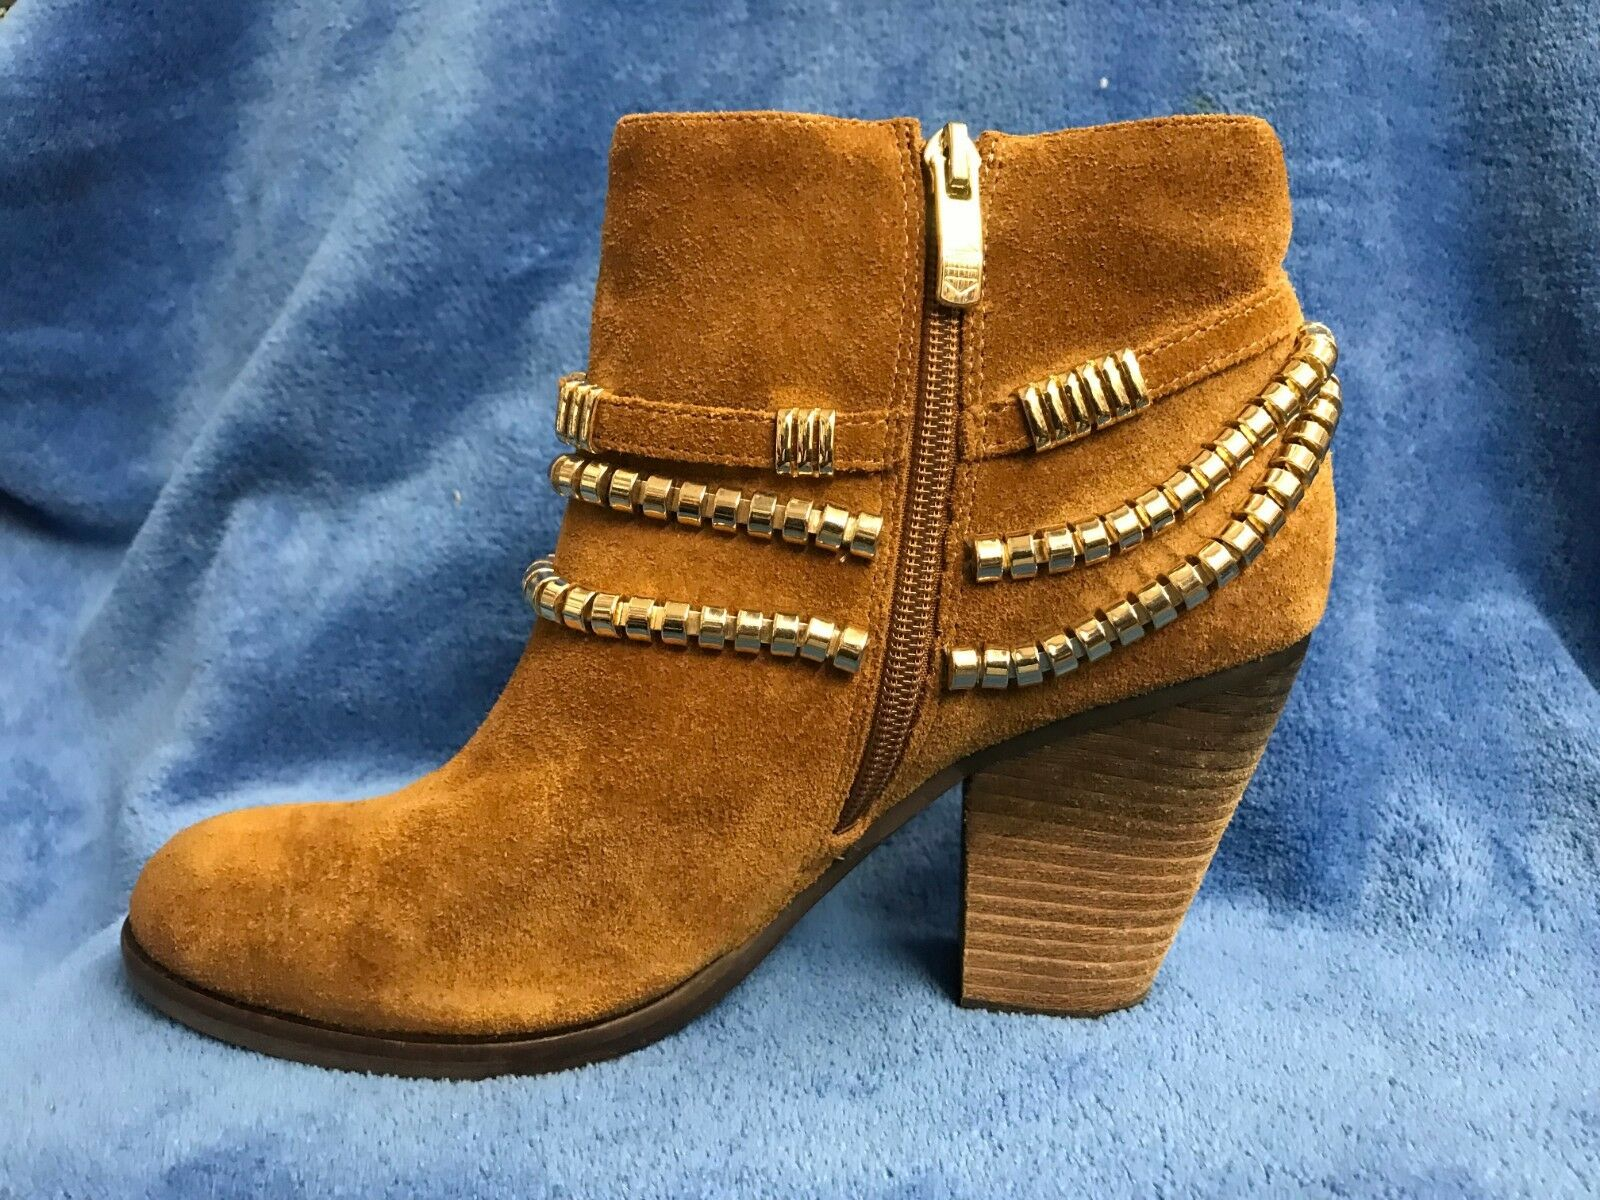 Vince Camuto Suede and Leather Booties Ankle Boots Size 7M